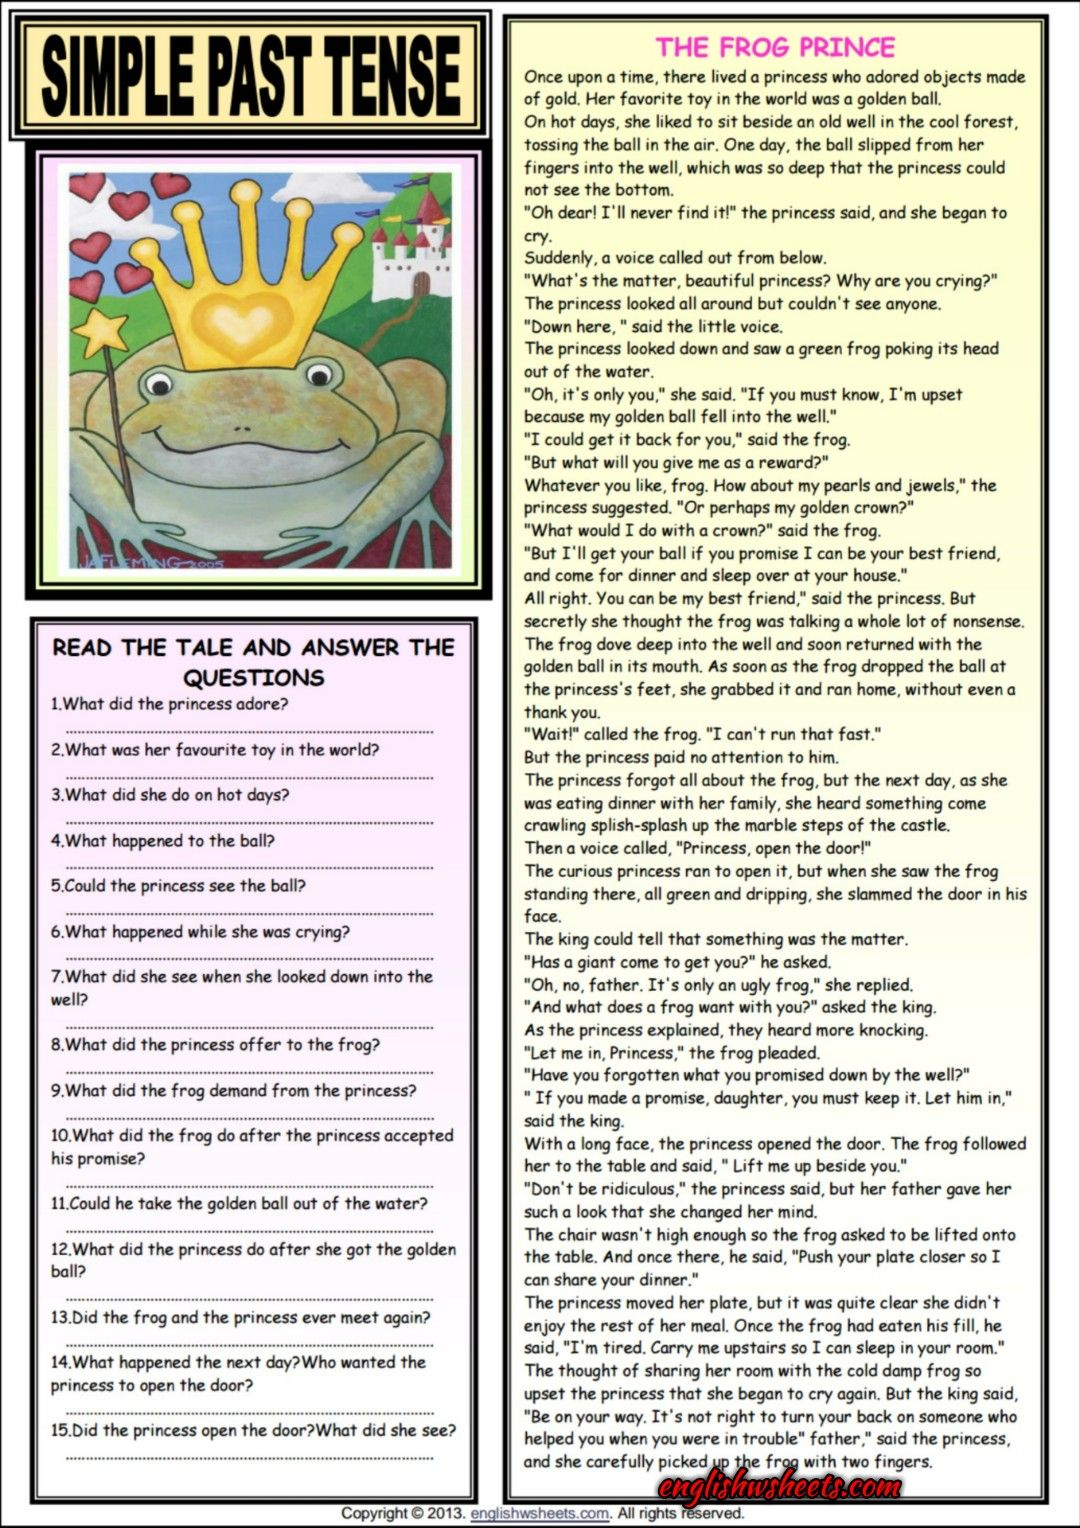 The Frog Prince Comprehension Esl Exercises Worksheet